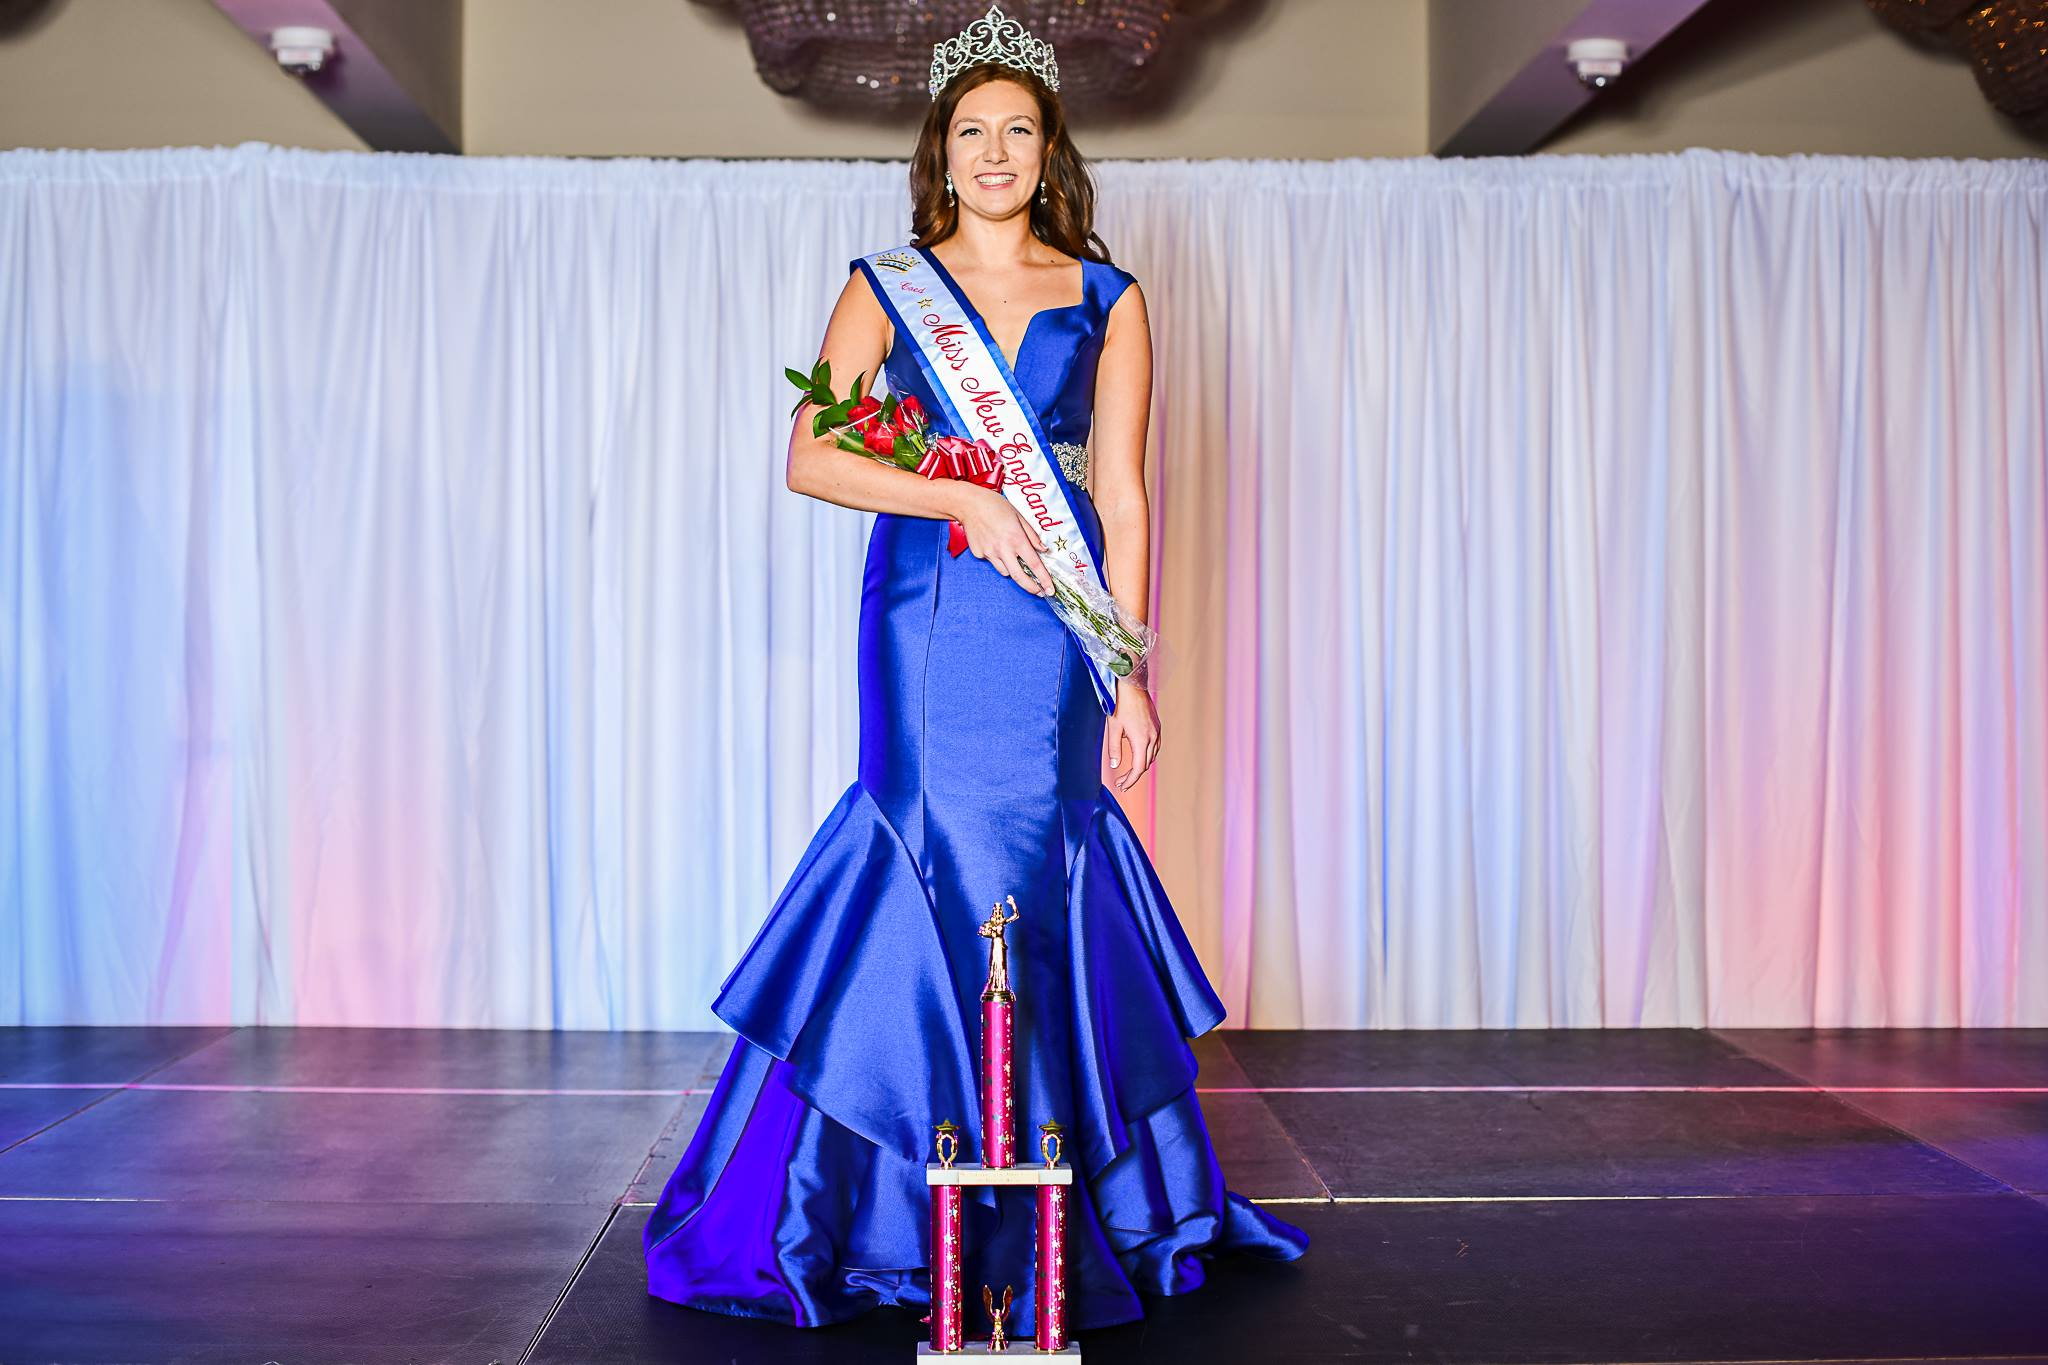 Miss New England Coed 2018